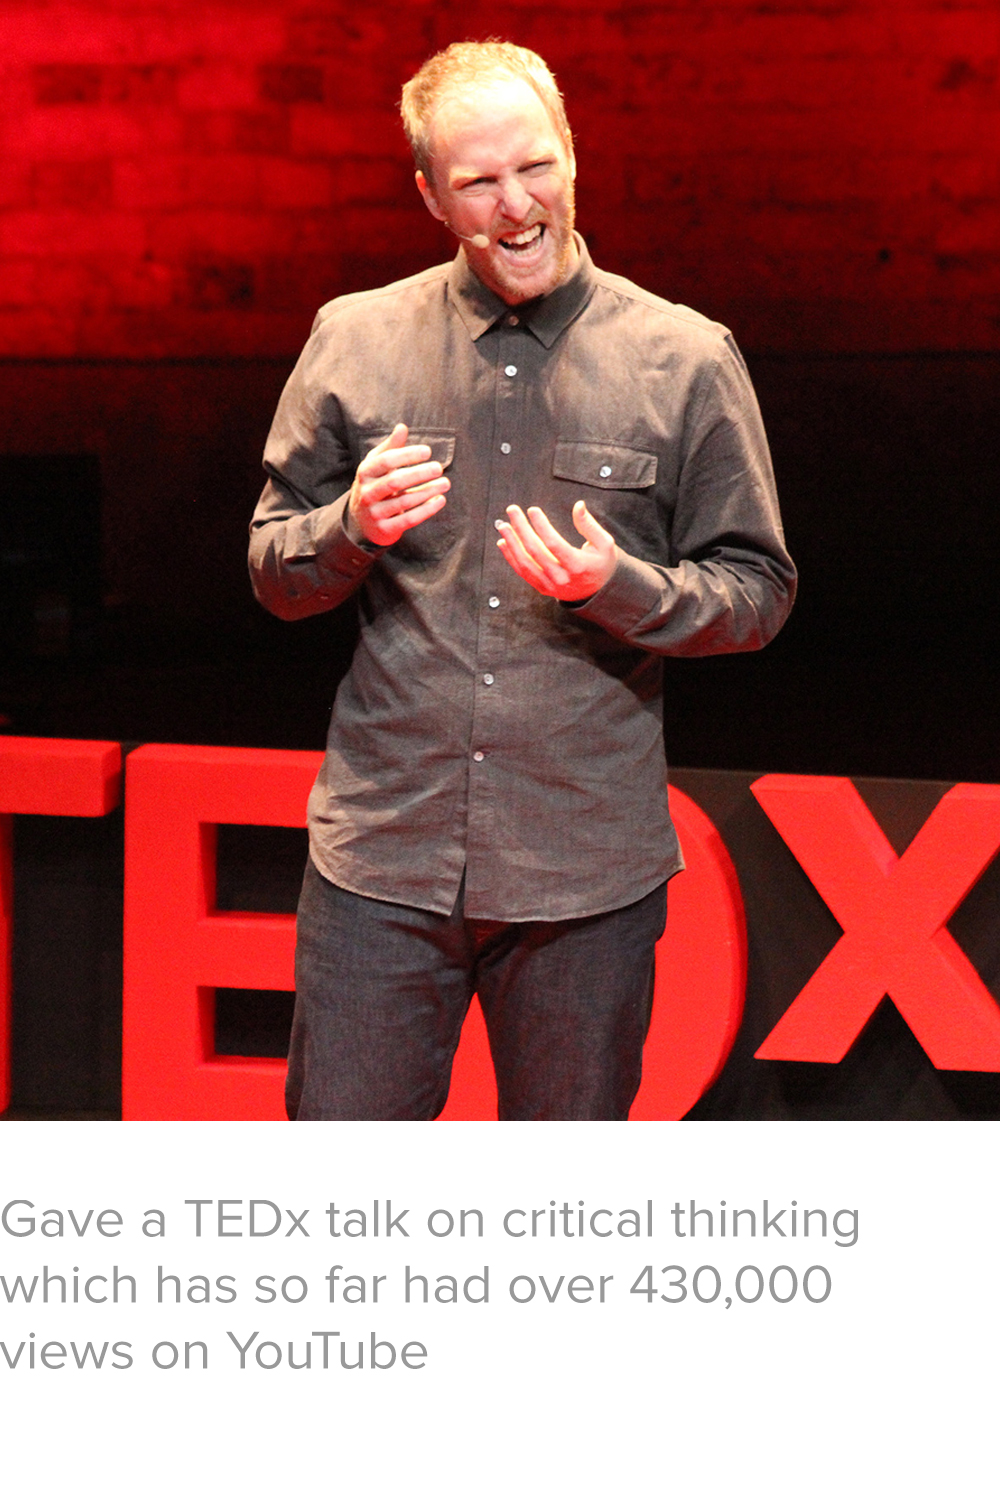 Other-Things-I-Did-V2_Tedx.jpg